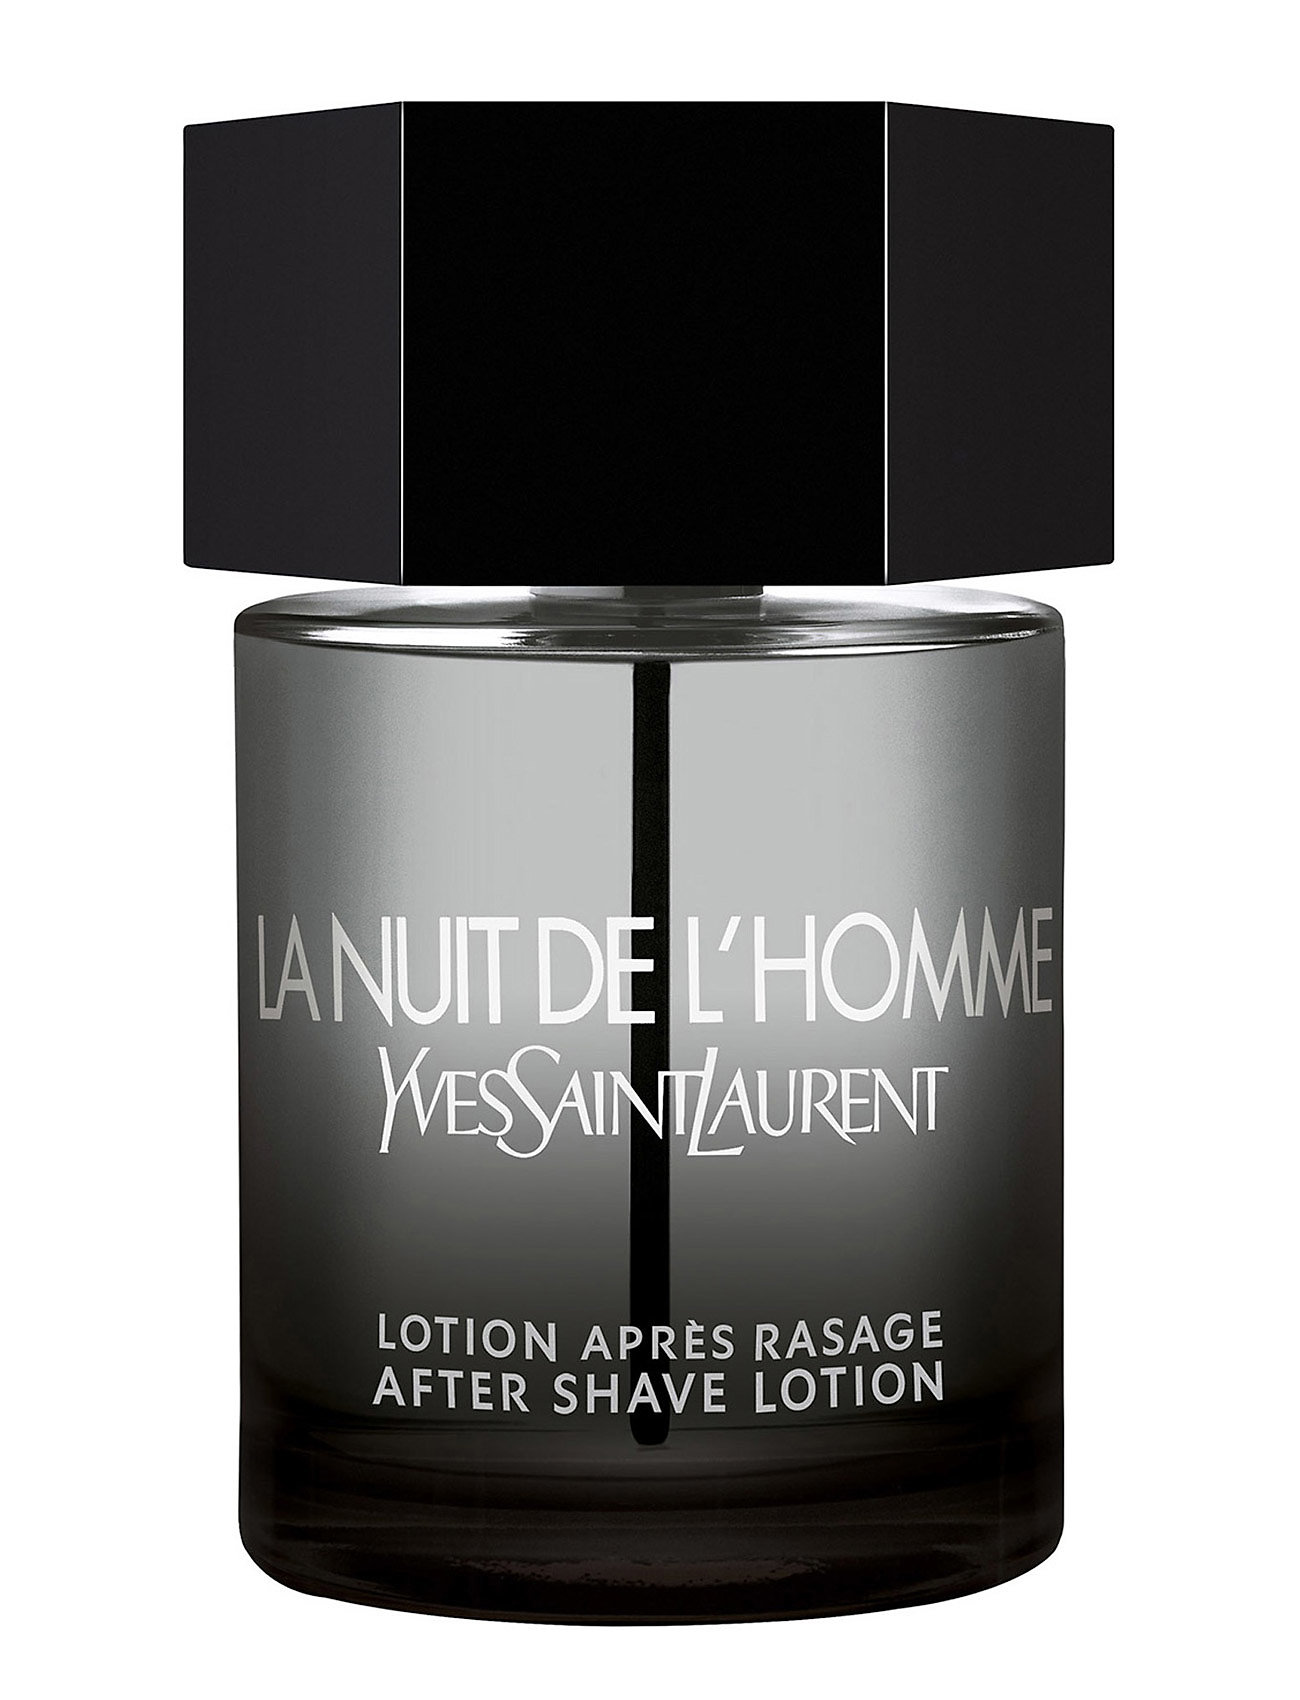 yves saint laurent – La nuit de l'homme after shave lotion 100 ml. fra boozt.com dk